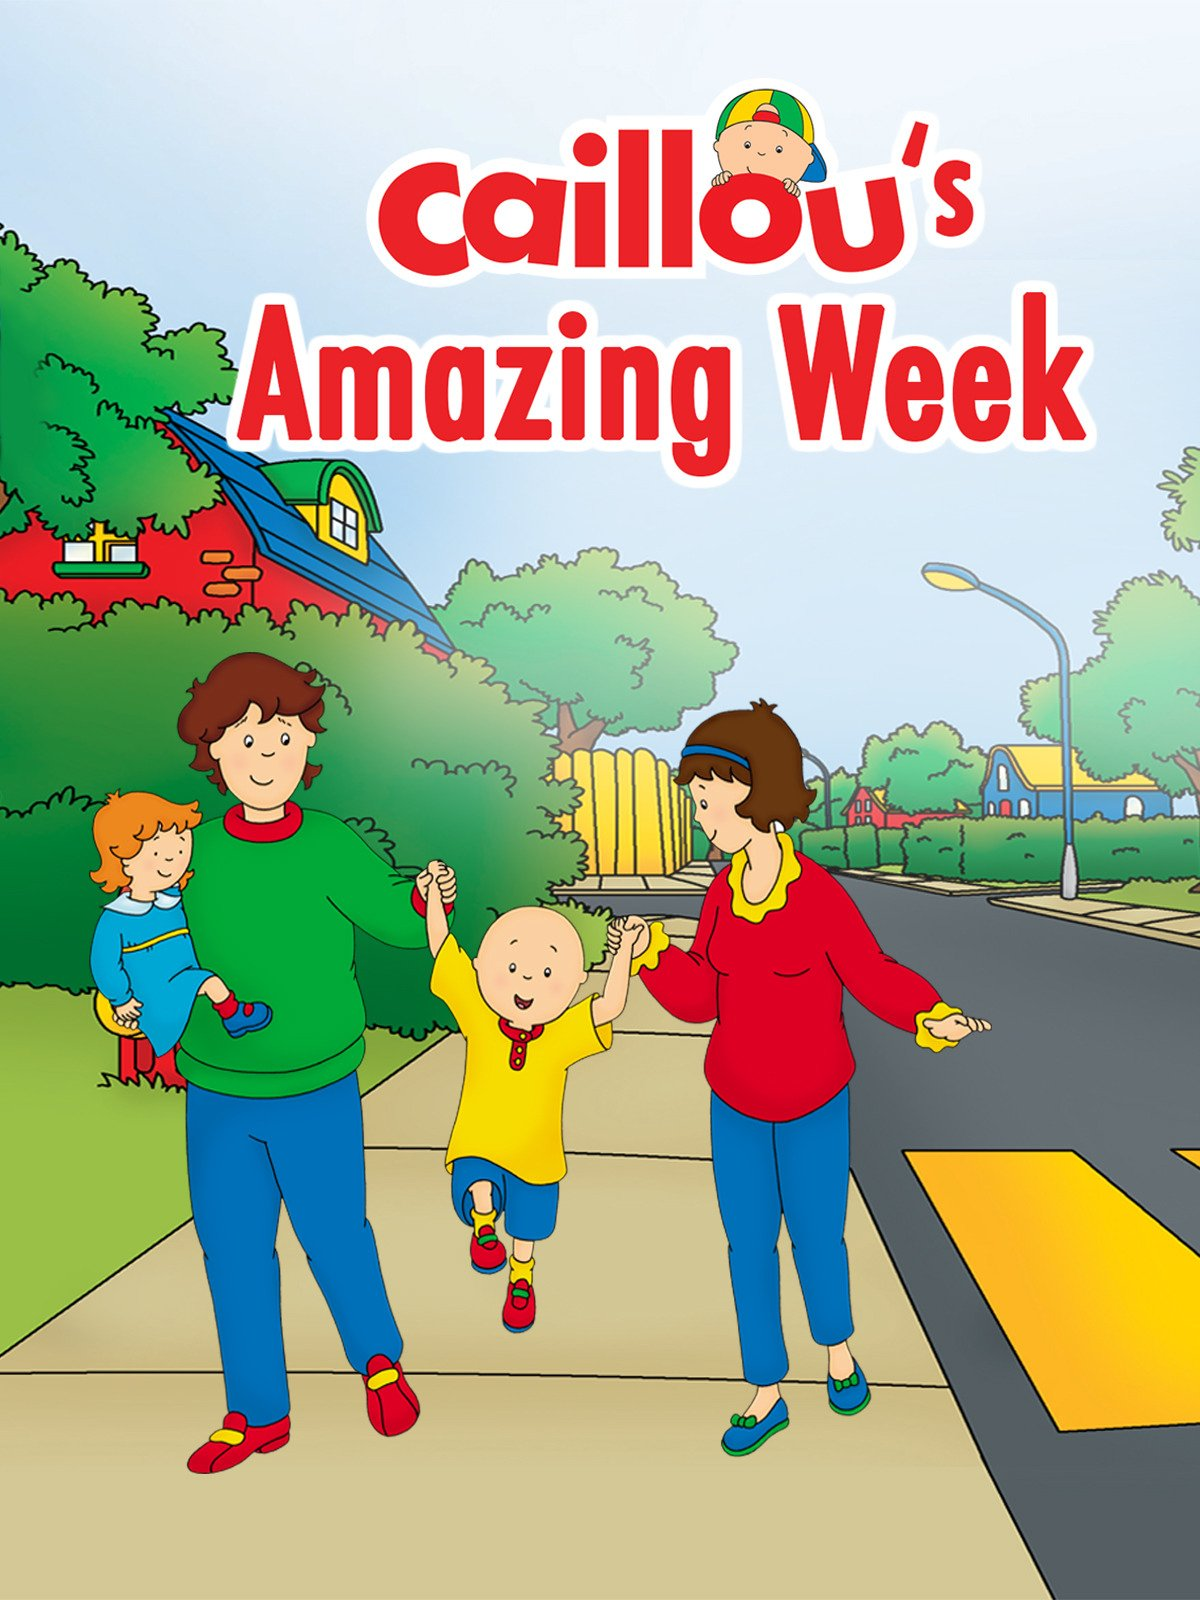 Caillou's Amazing Week